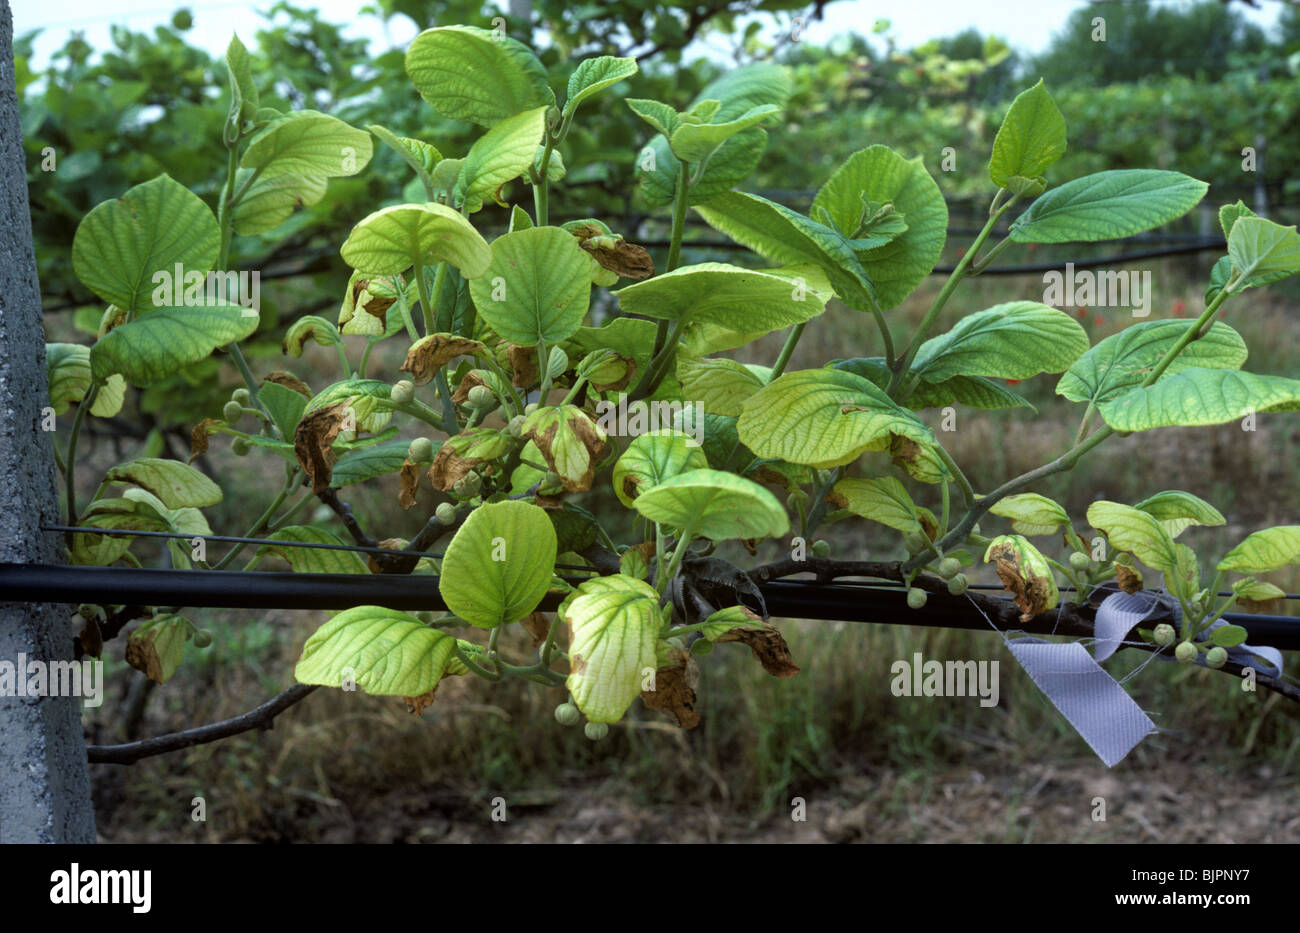 Kiwi vine yellowed and chlorotic by iron deficiency, Thessaloniki, Greece - Stock Image